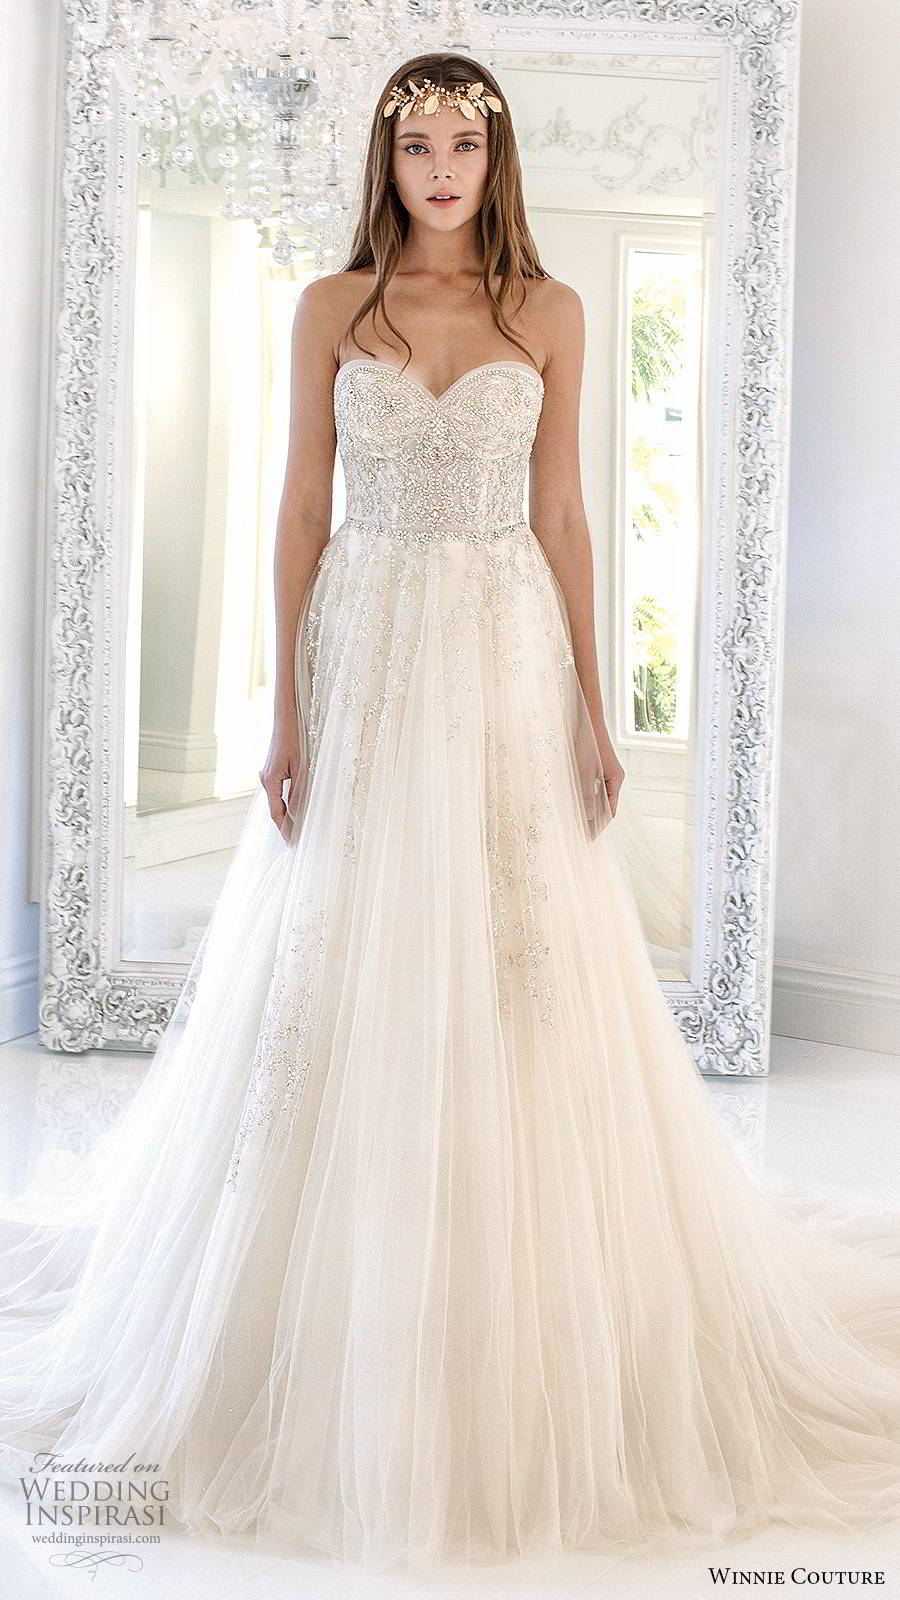 winnie couture 2019 bridal strapless sweetheart fully embellished  a line ball gown glitzy romantic wedding dress chapel train (7) mv